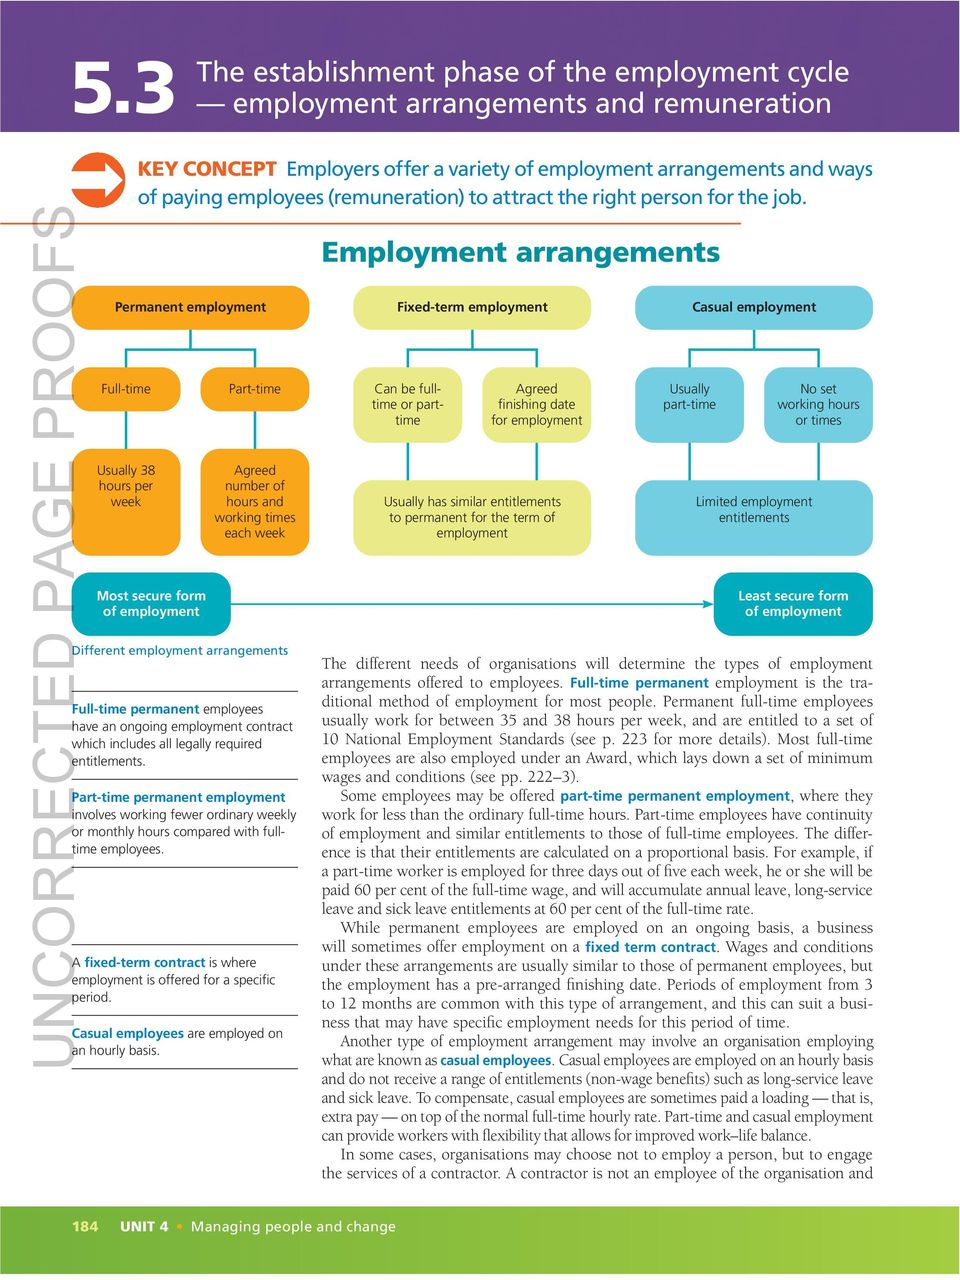 employment arrangements Permanent employment Full-time Part-time Usually 38 hours per week Agreed number of hours and working times each week Fixed-term employment Can be fulltime or parttime Usually